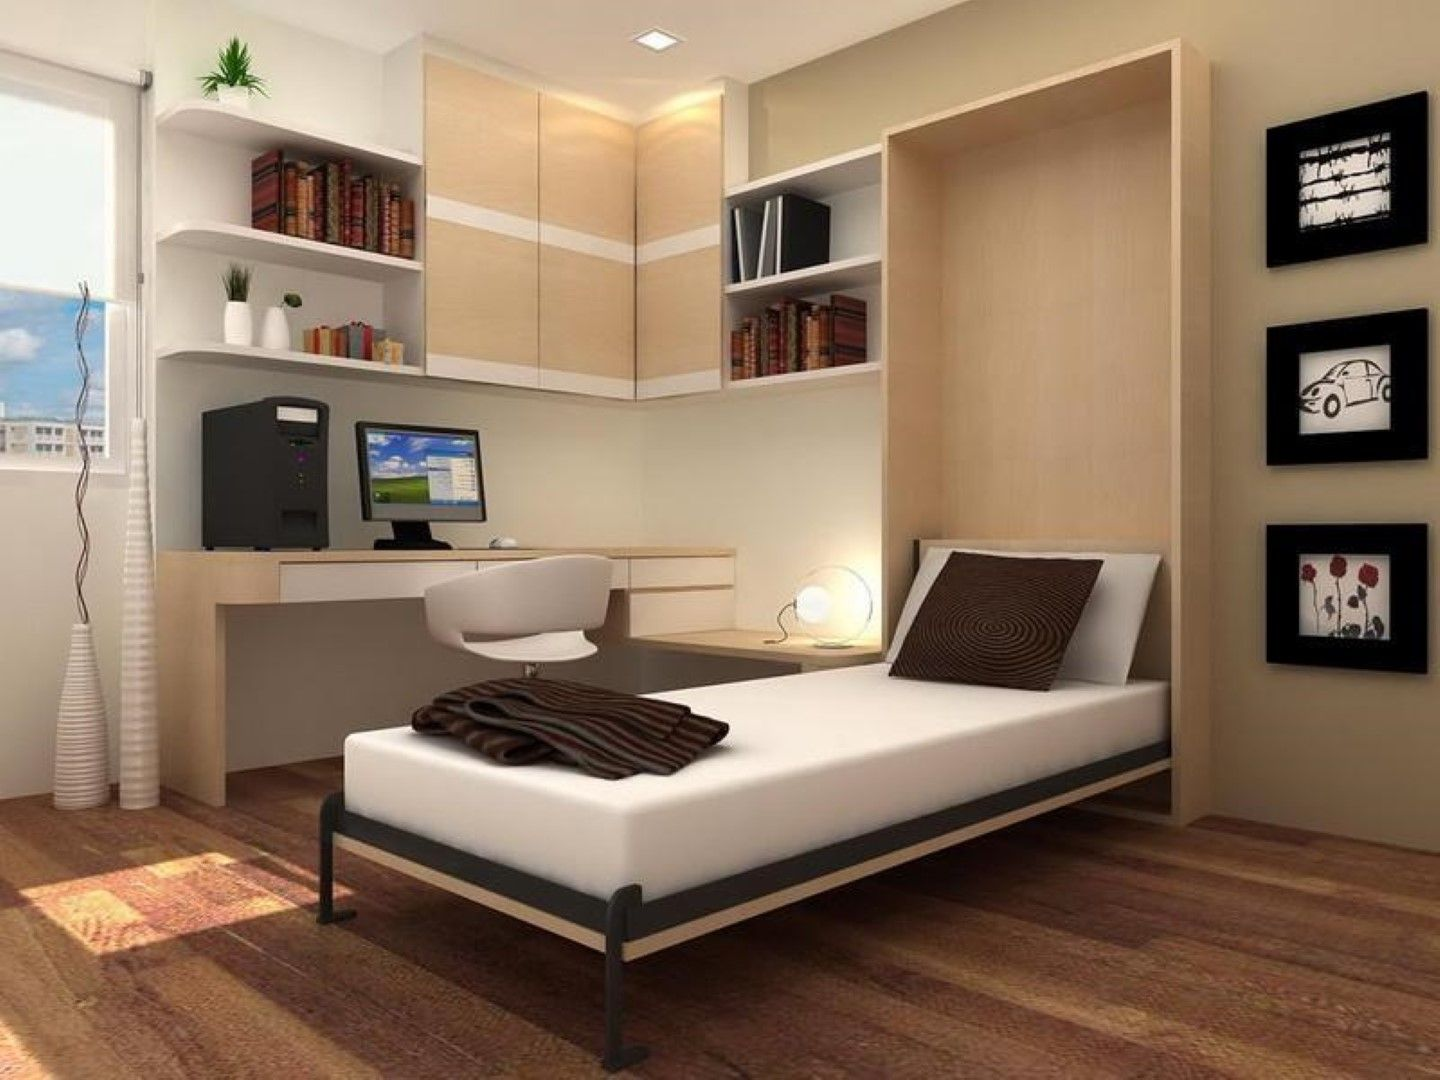 Statue of Comfortable Bedroom Design with Murphy Bed Kit